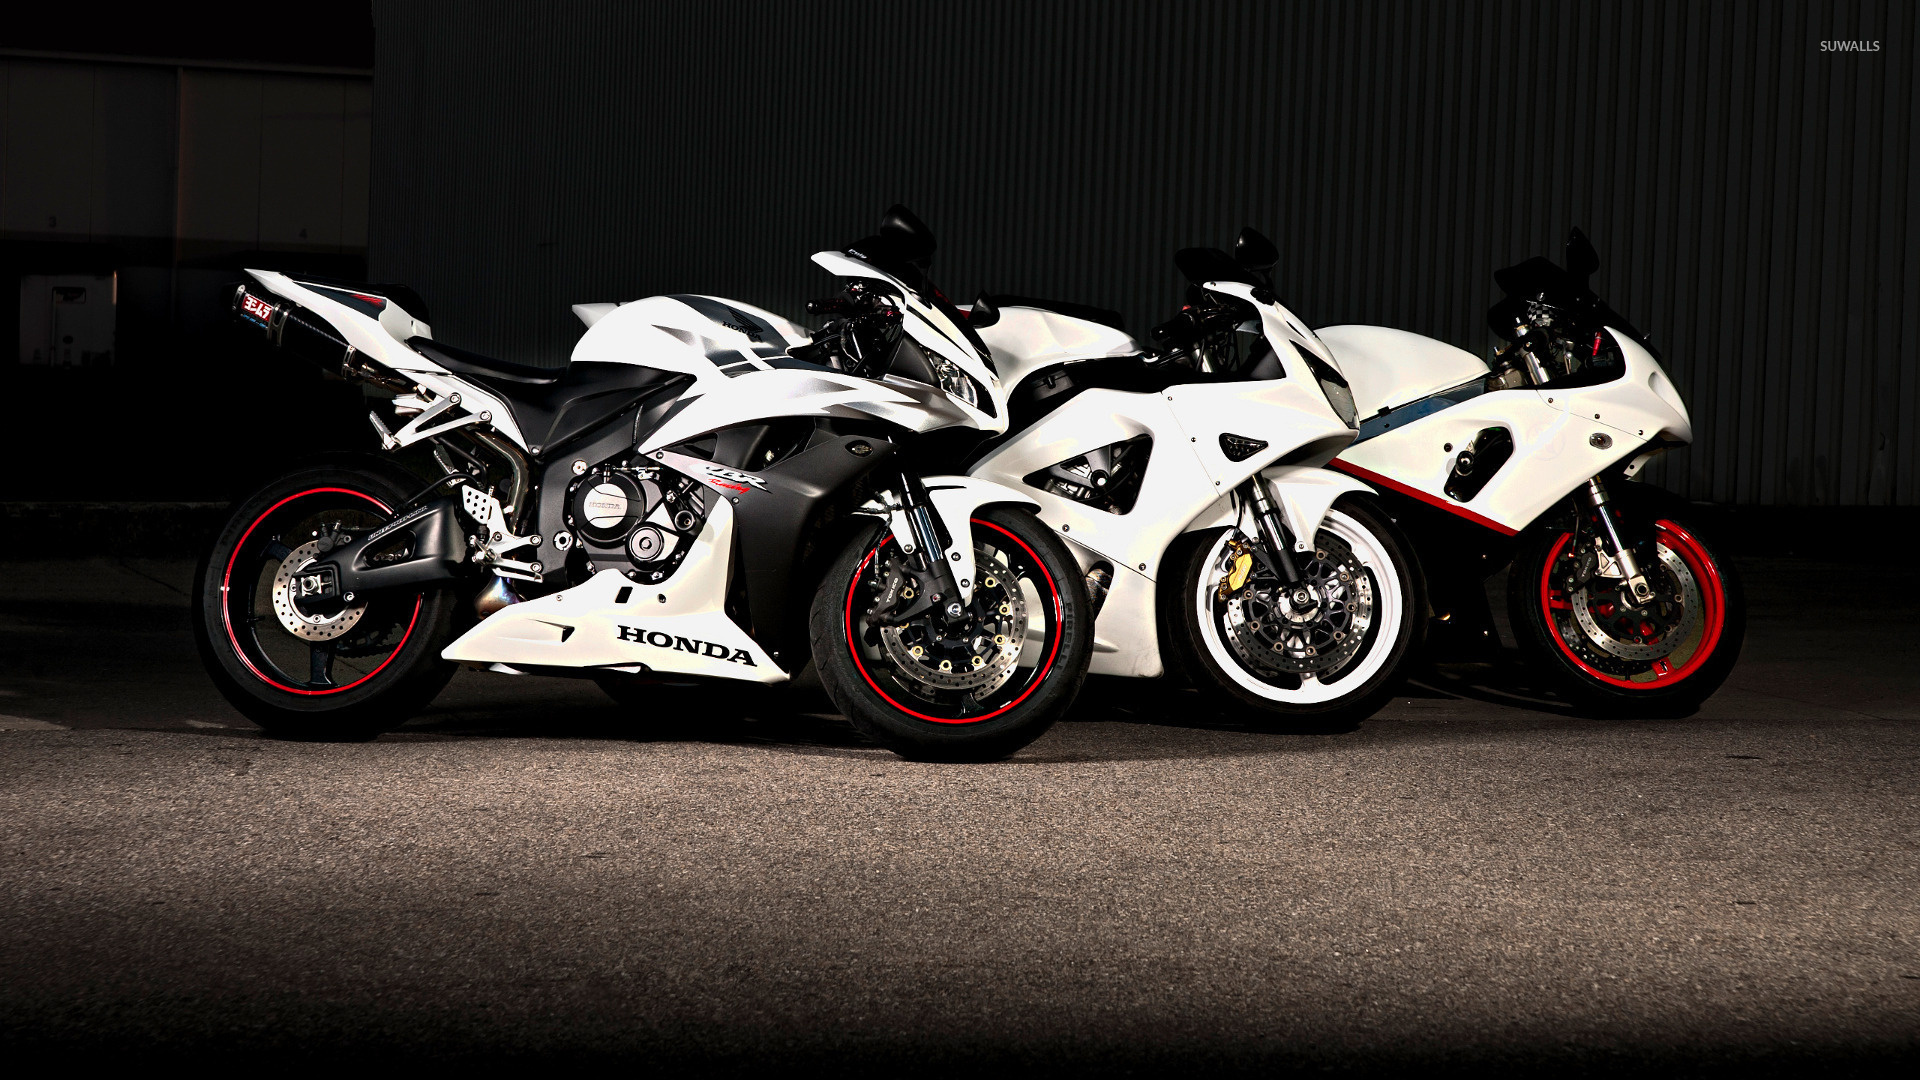 White Honda Cbr Series Motorcycles Wallpaper Motorcycle Wallpapers 54383